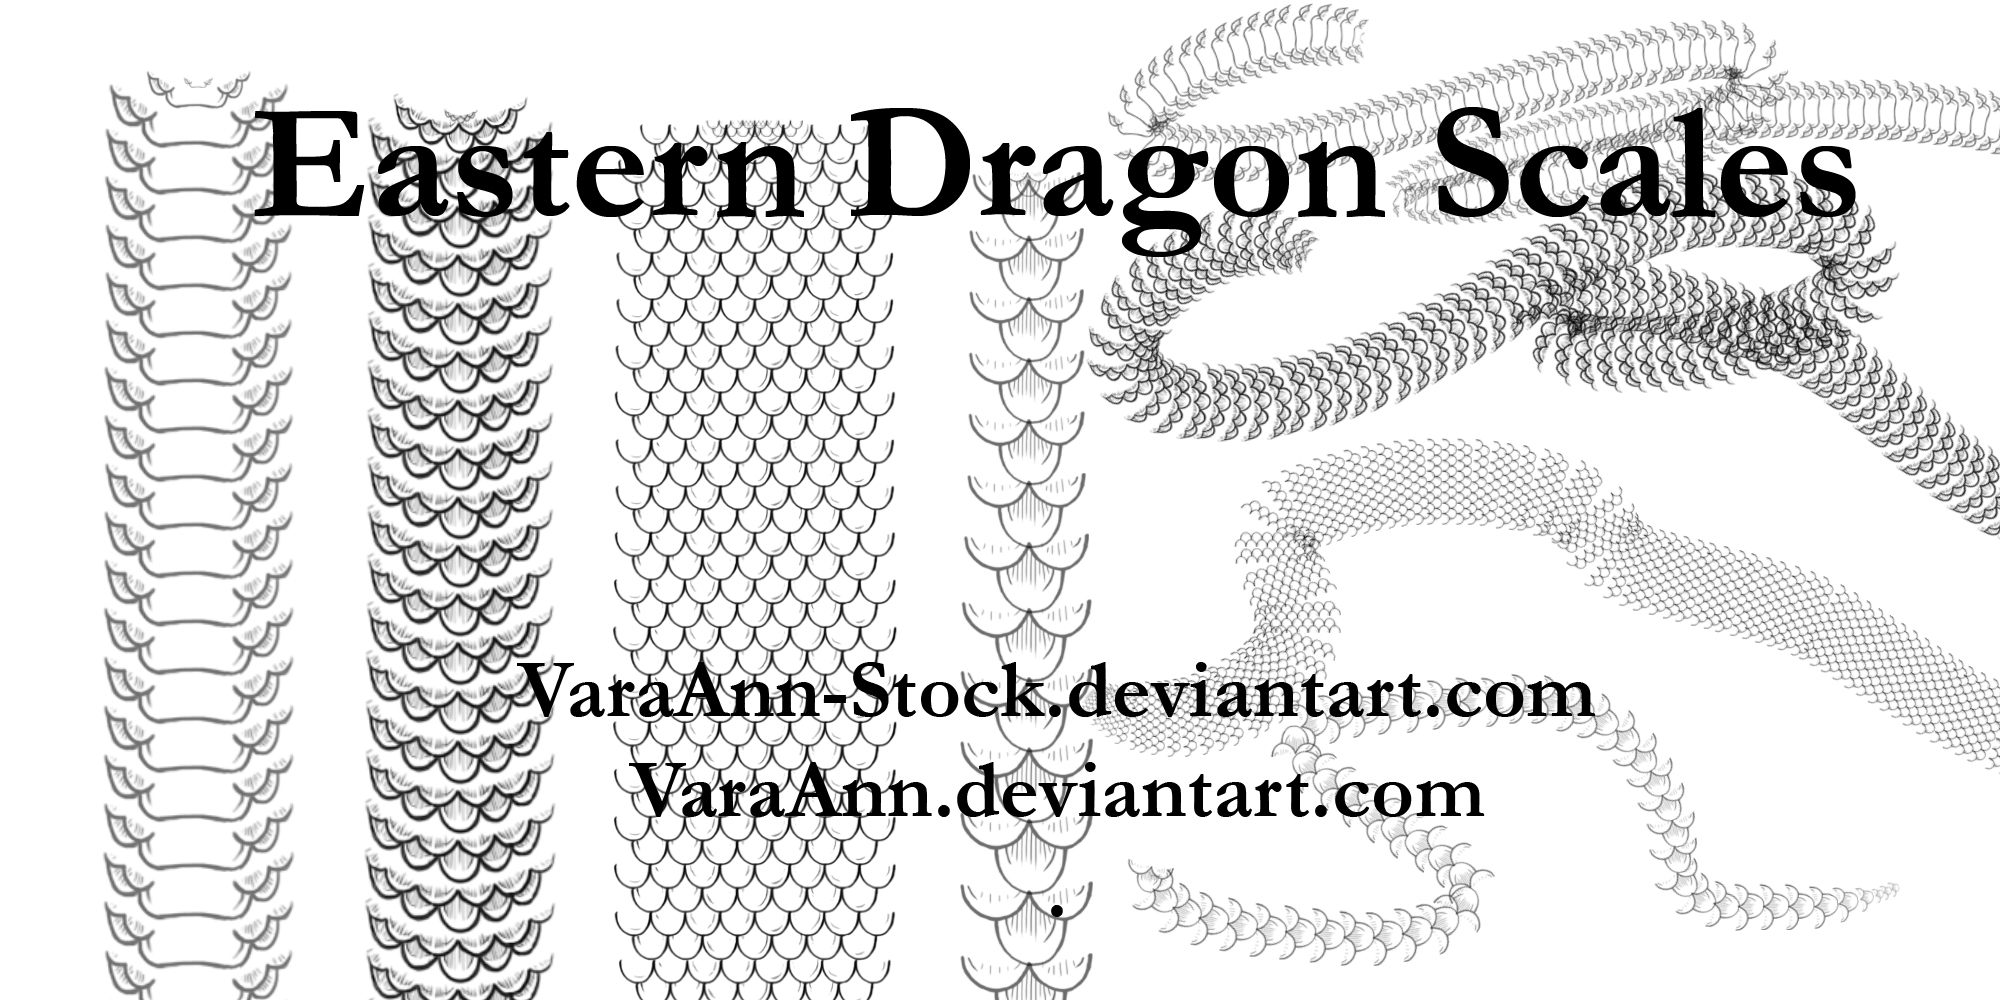 Eastern Dragon Scales Brushes by VaraAnn-Stock on DeviantArt